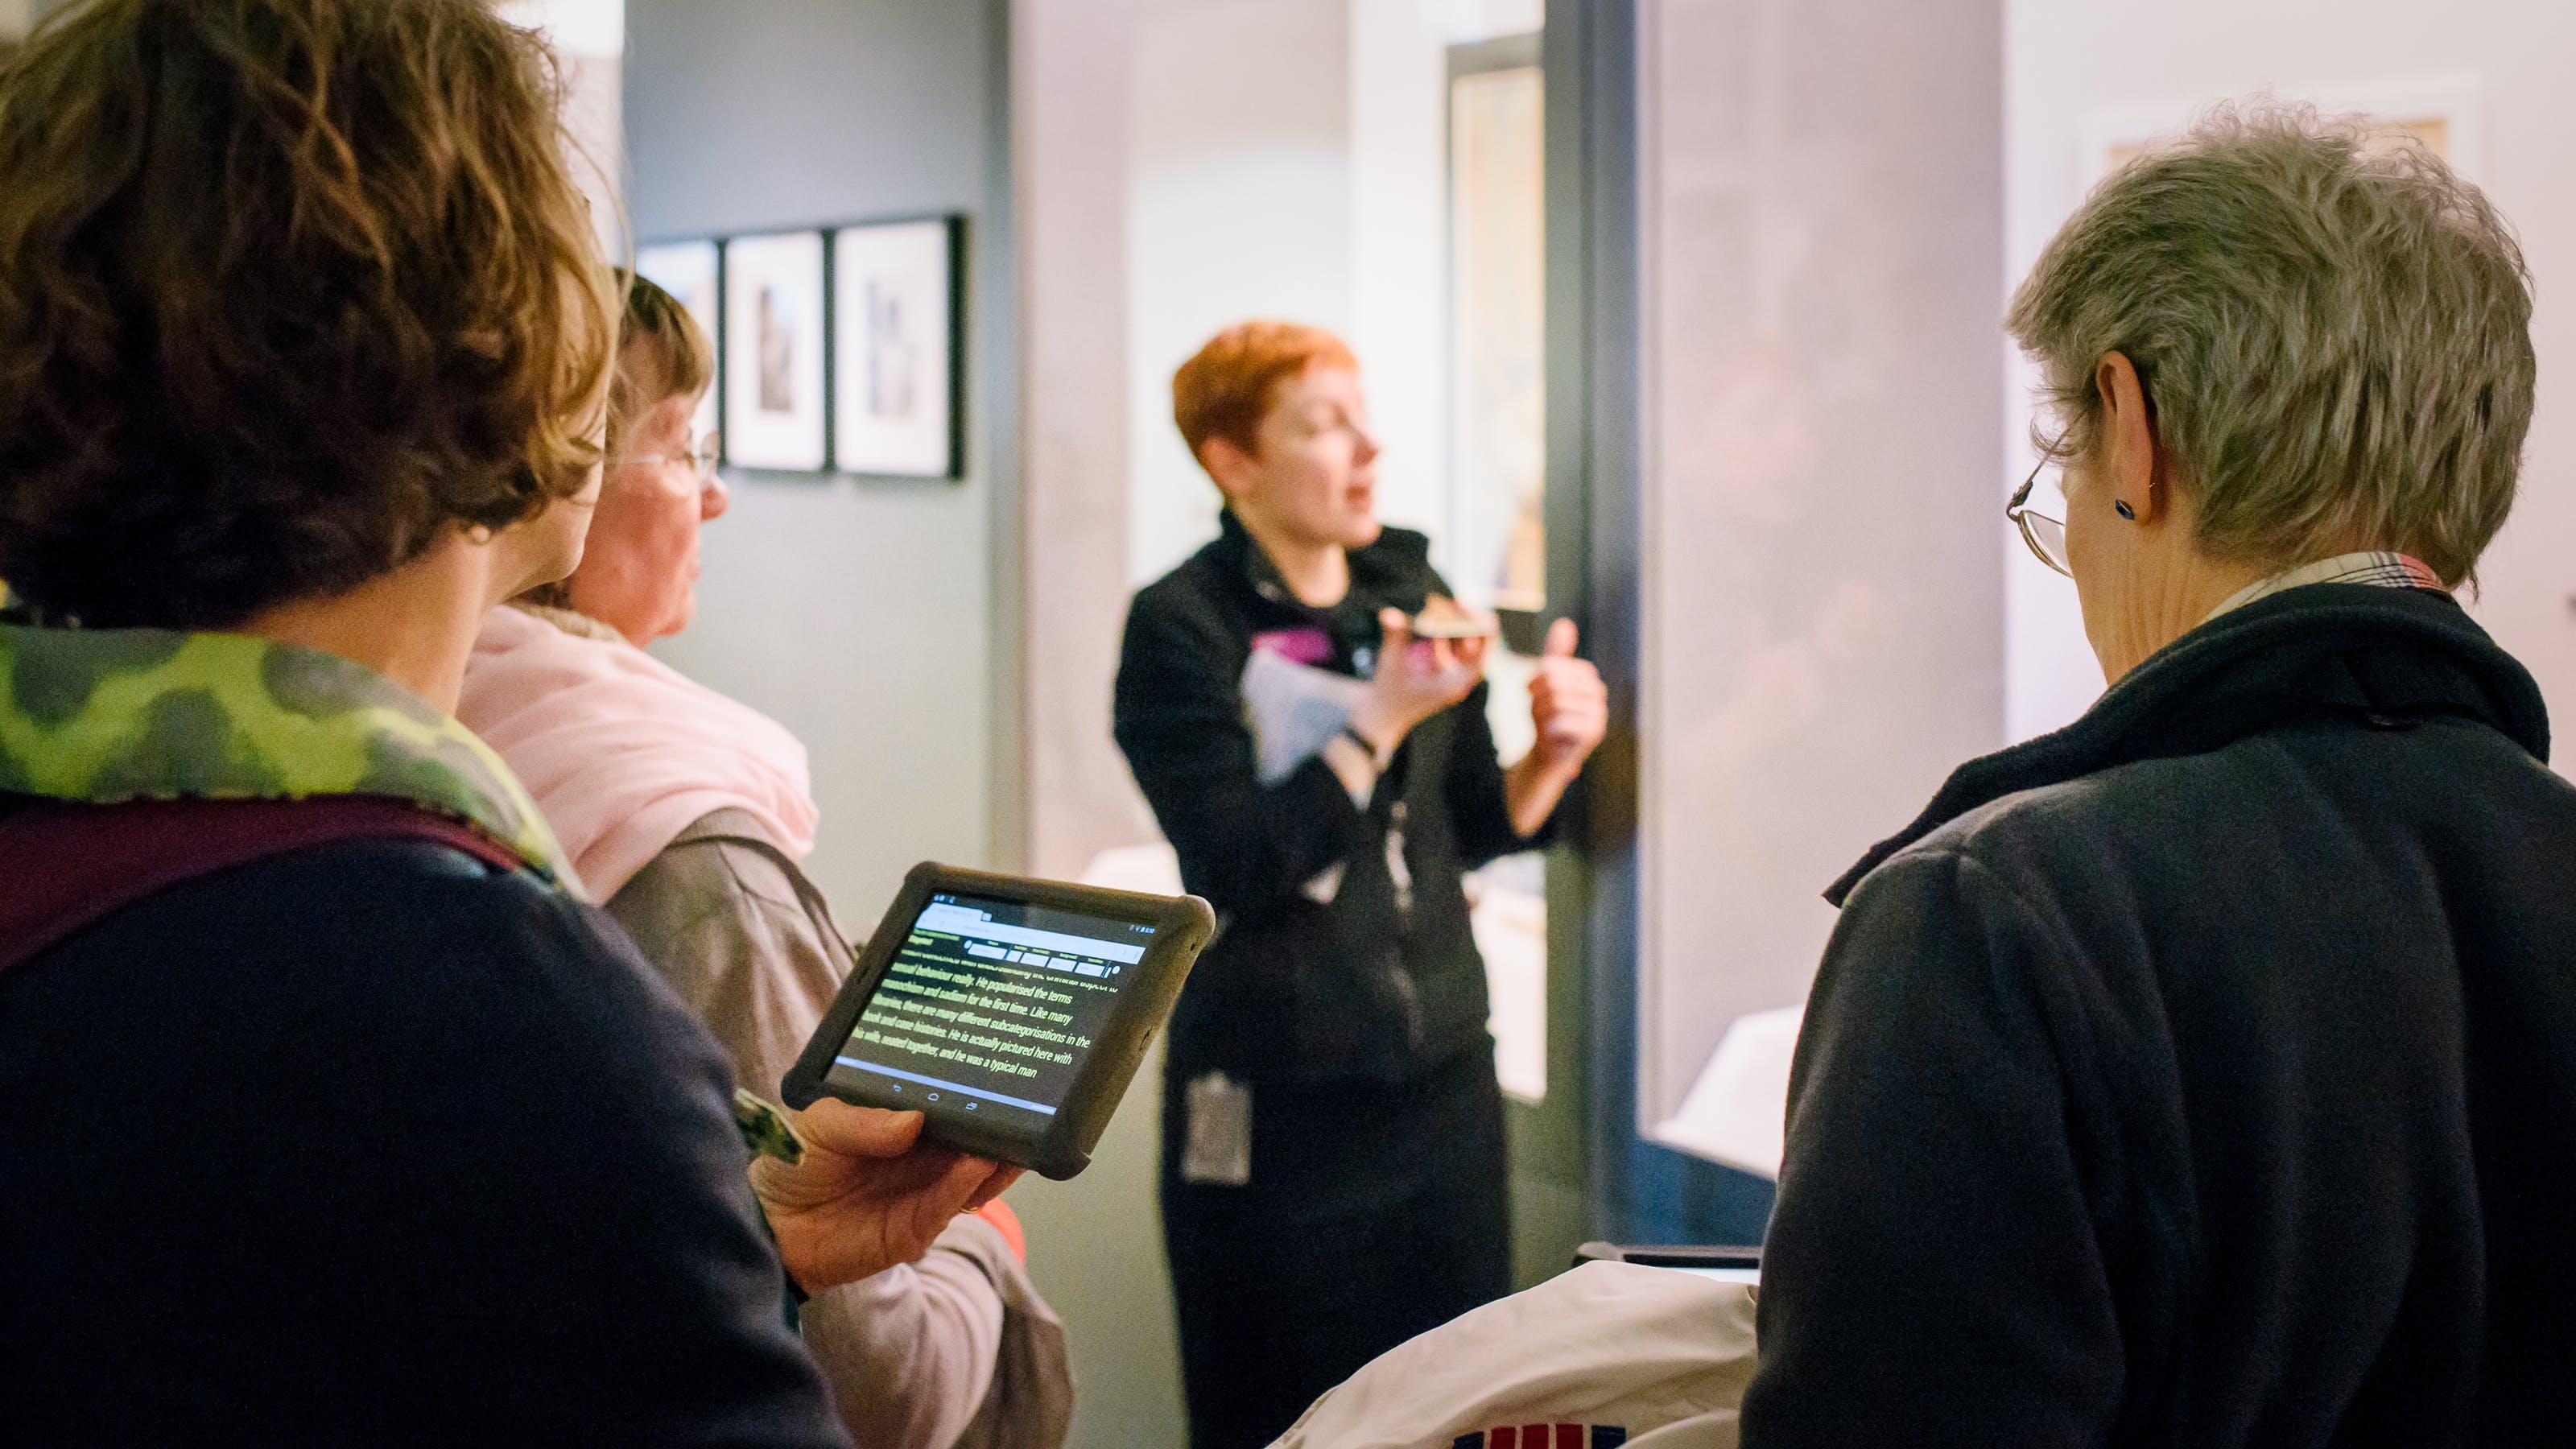 Photograph of a Wellcome Visitor Experience Assistant speaking into a phone whilst giving a speech-to-text tour of a gallery. In the foreground is a tablet displaying the transition.